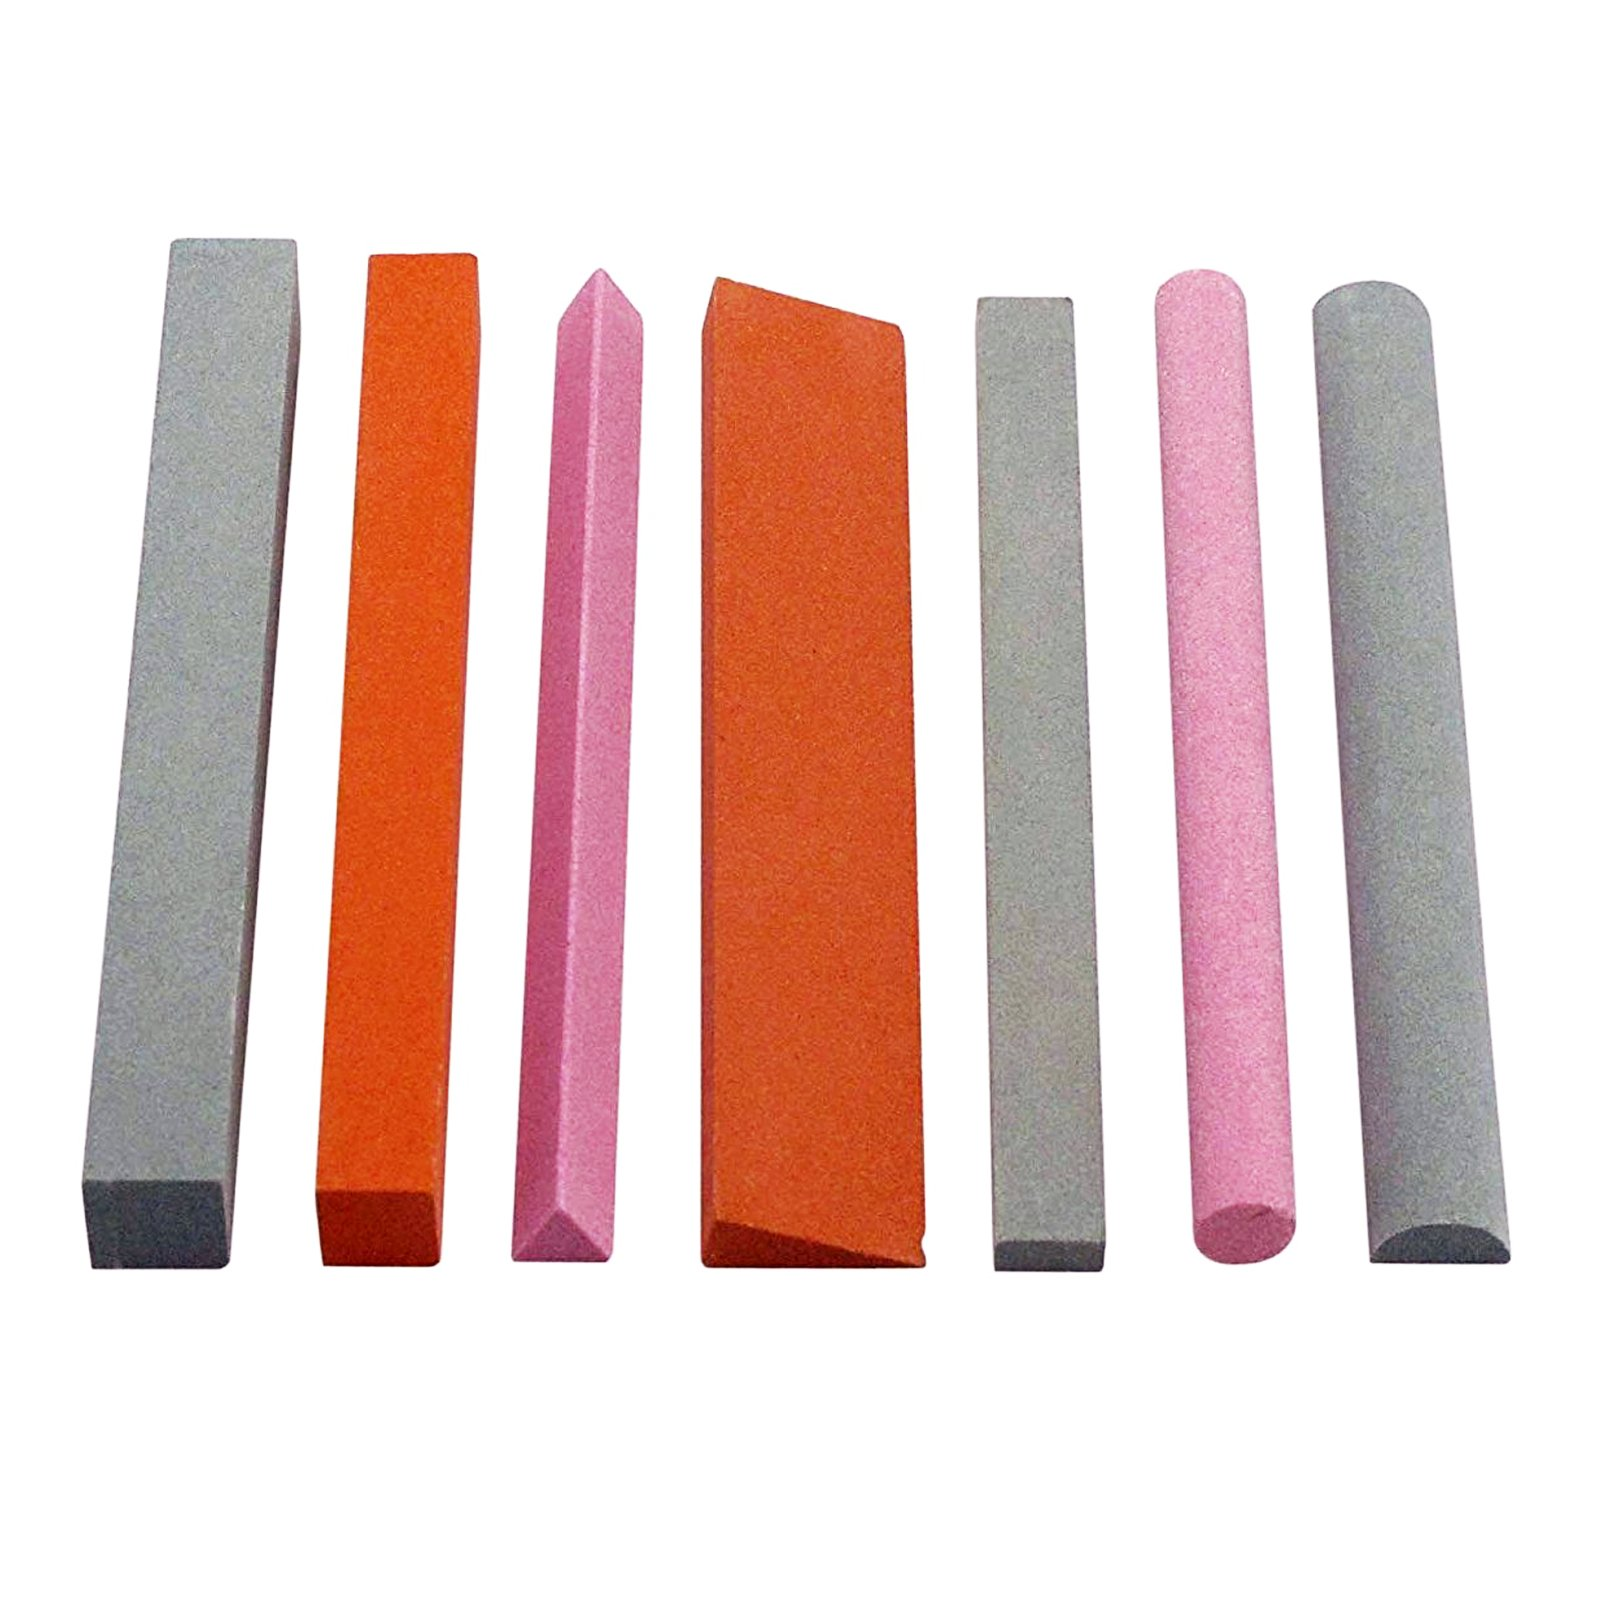 Universal Tool Sharpening Stone Set Variety Shapes Grits 180 6 Inch - 7pc